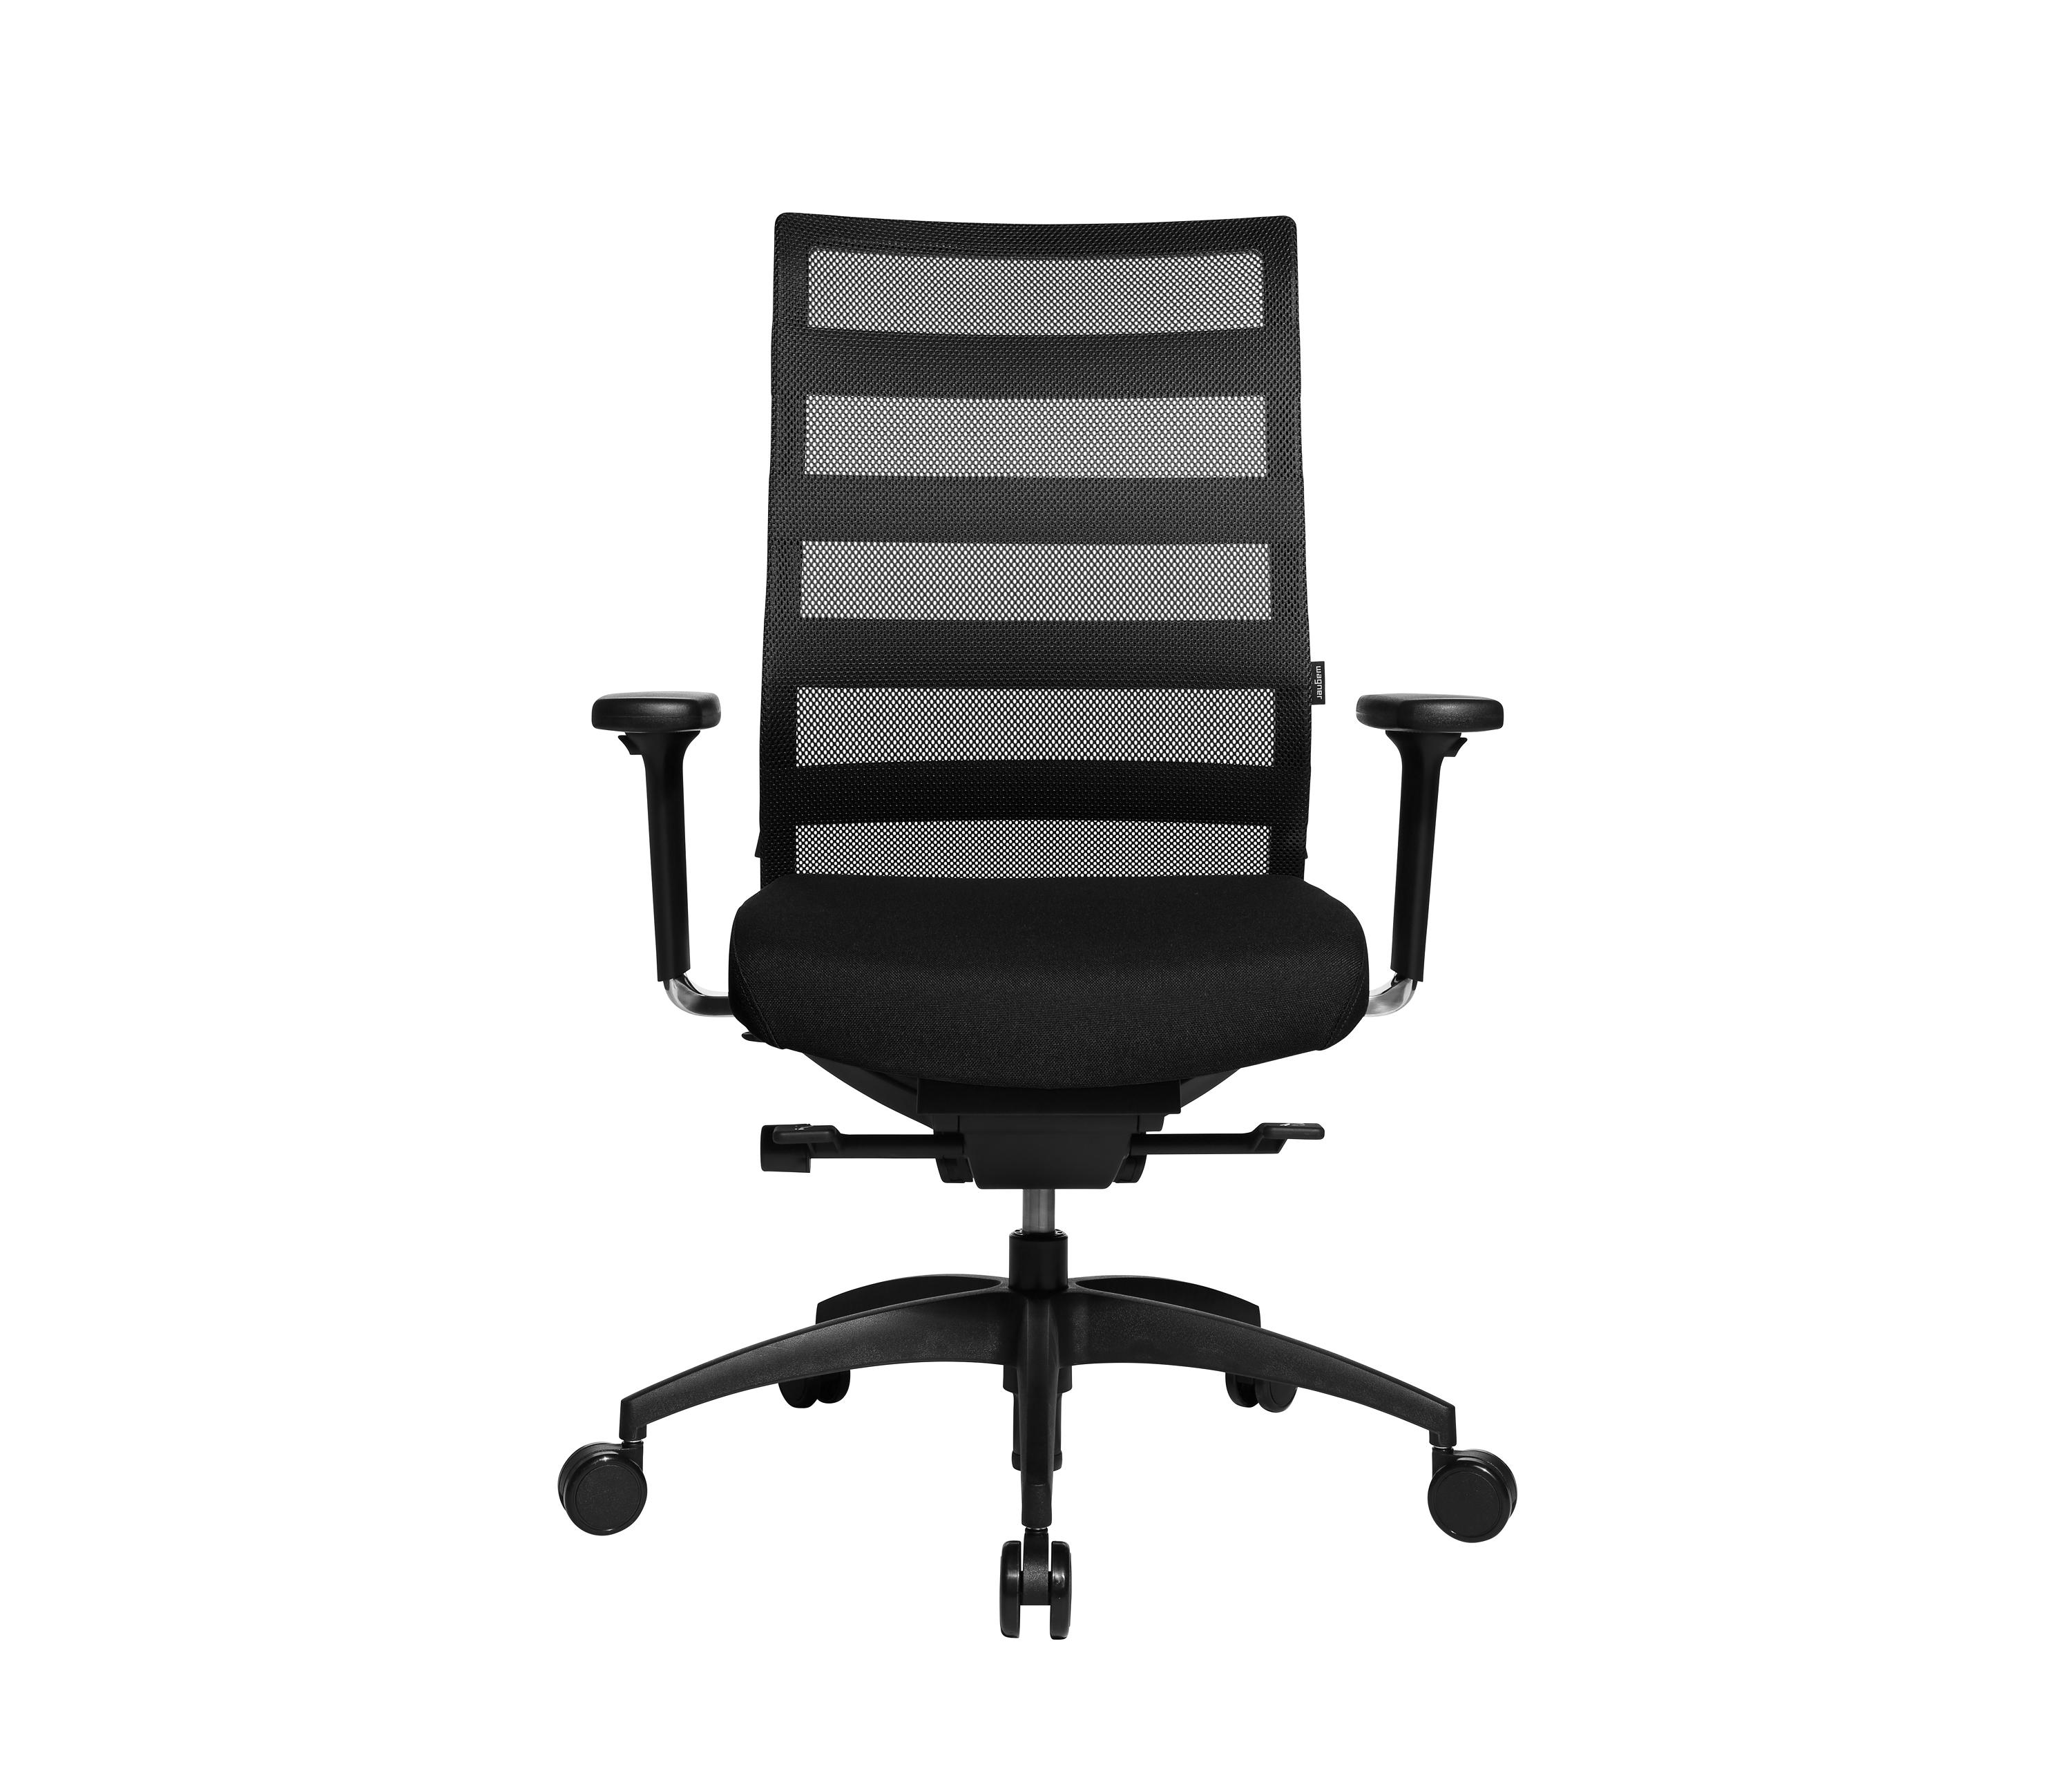 Ergomedic 100 1 Office Chairs From Wagner Architonic